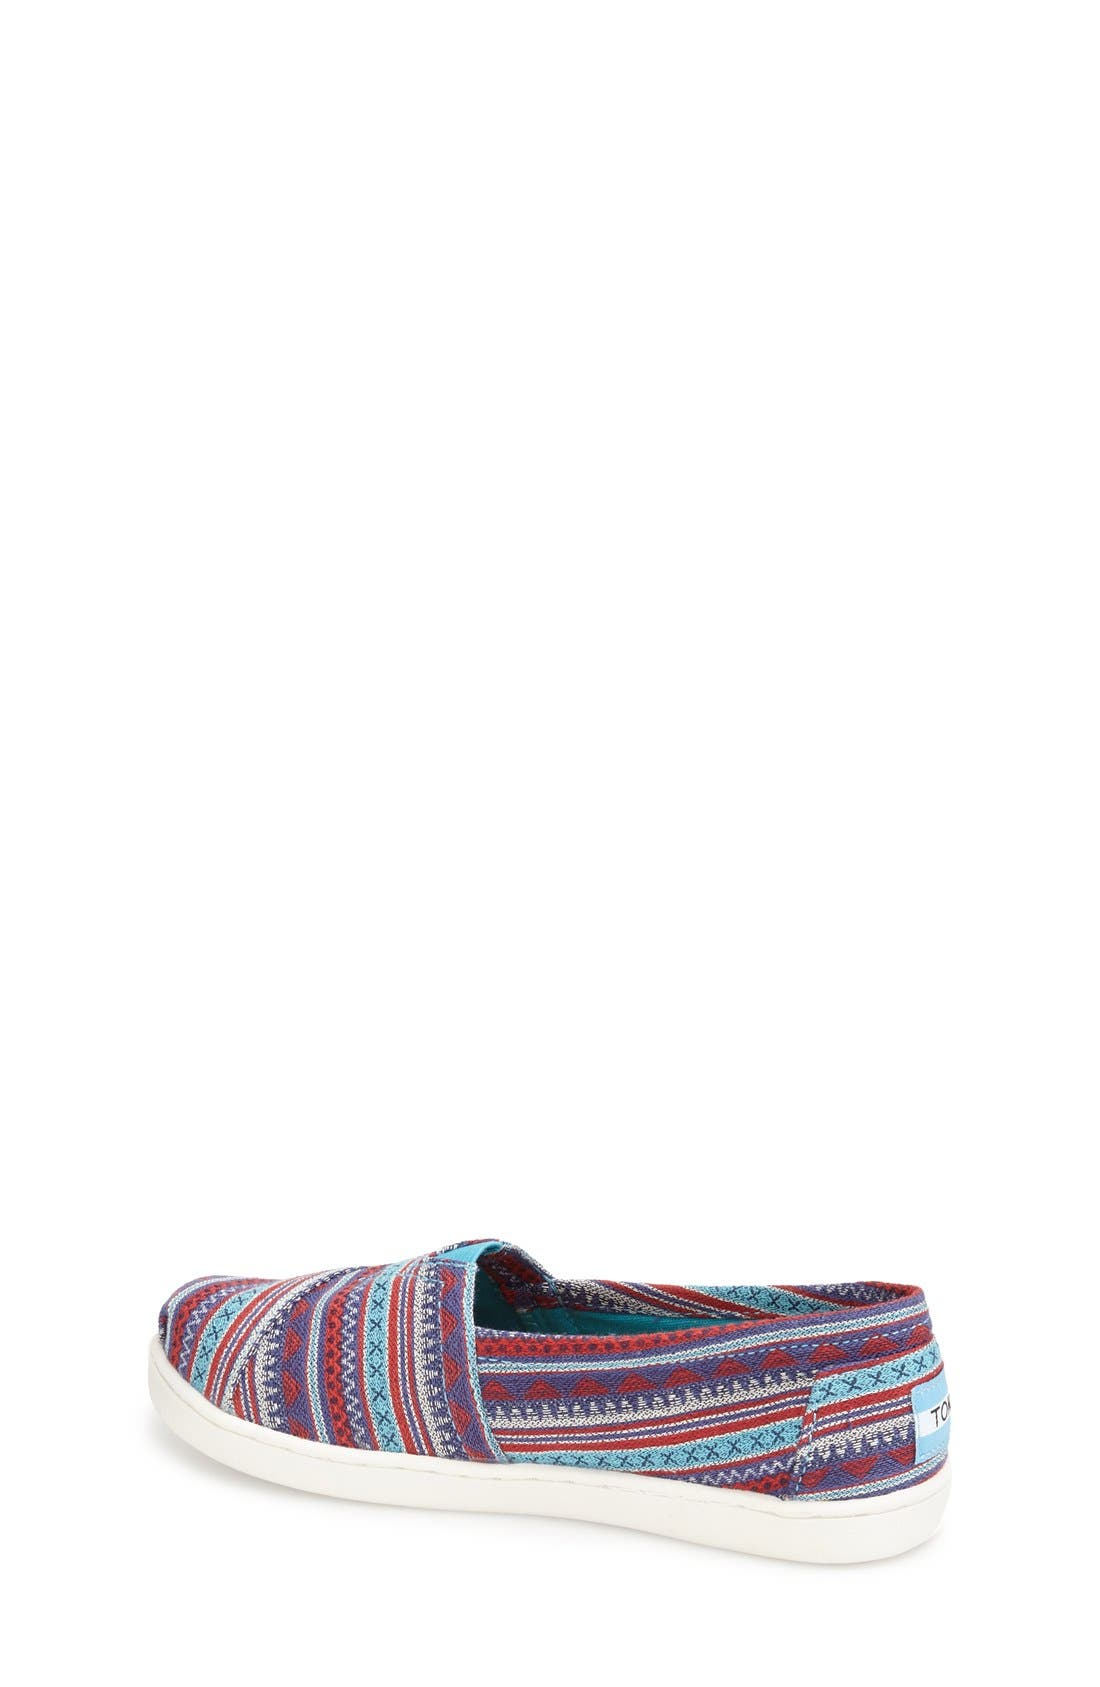 'Classic' Slip-On,                             Alternate thumbnail 6, color,                             420